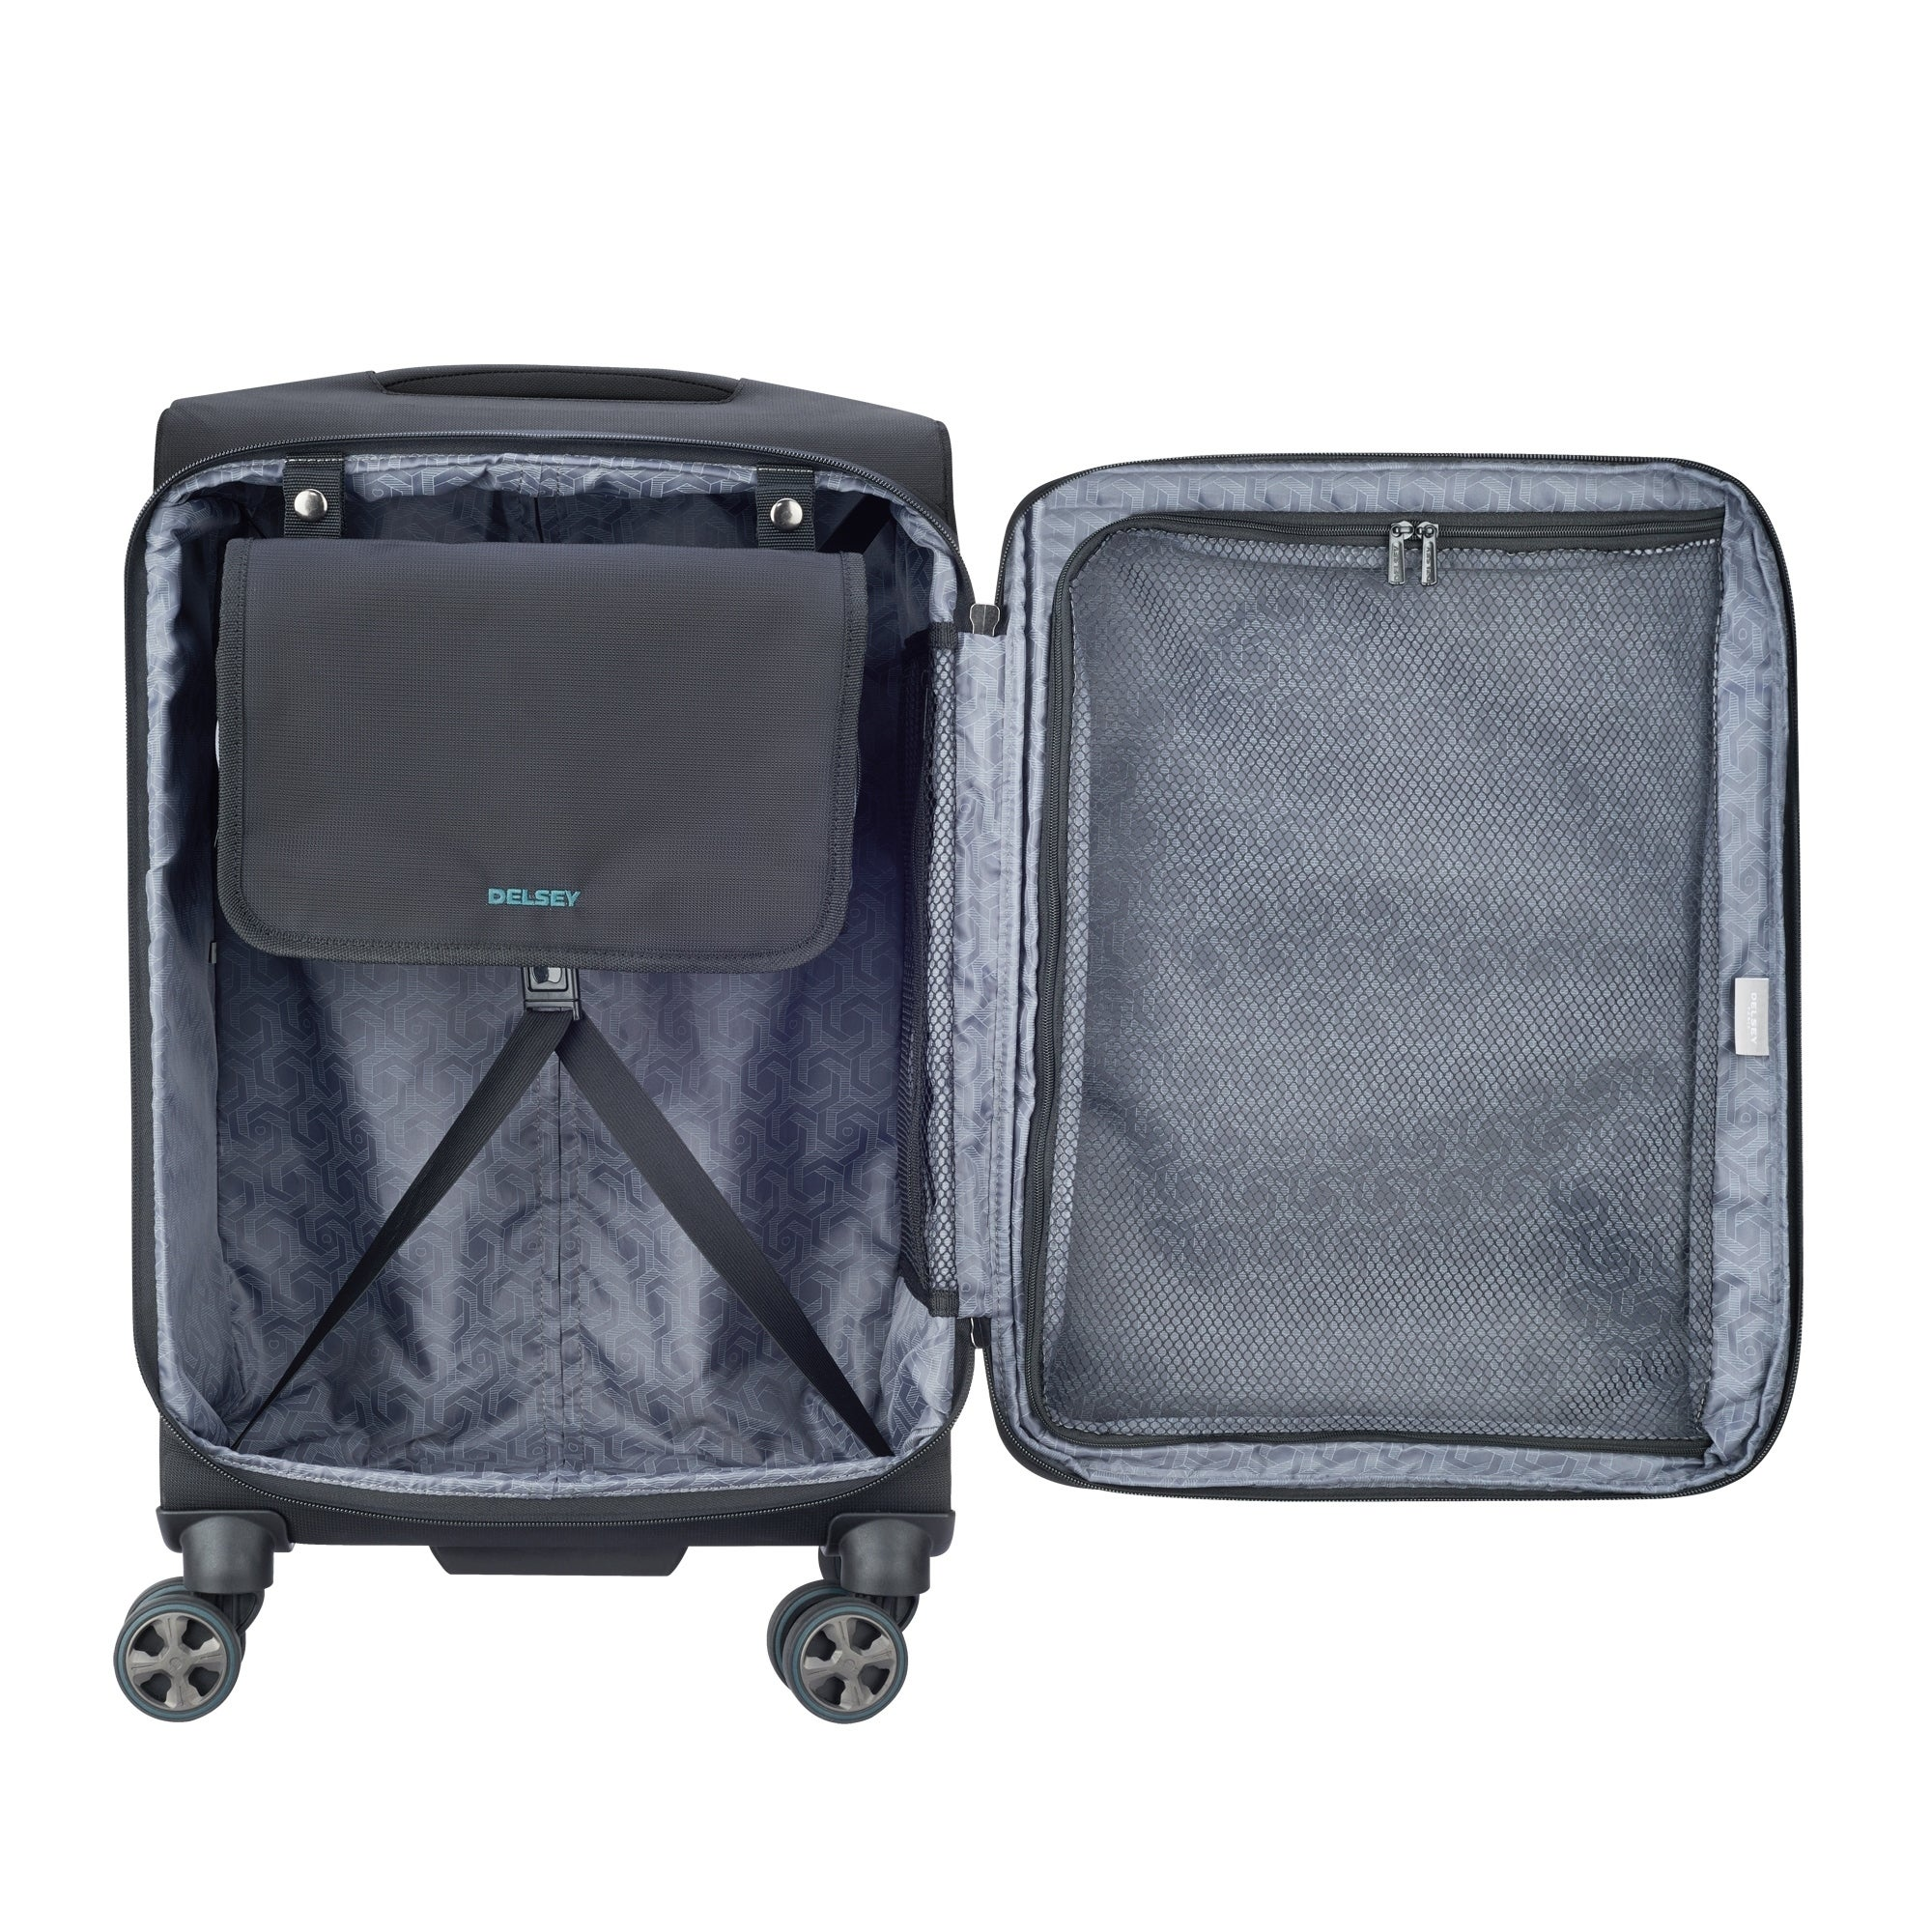 DELSEY Paris Hyperglide 4-Piece Expandable Spinner Nested Luggage Set